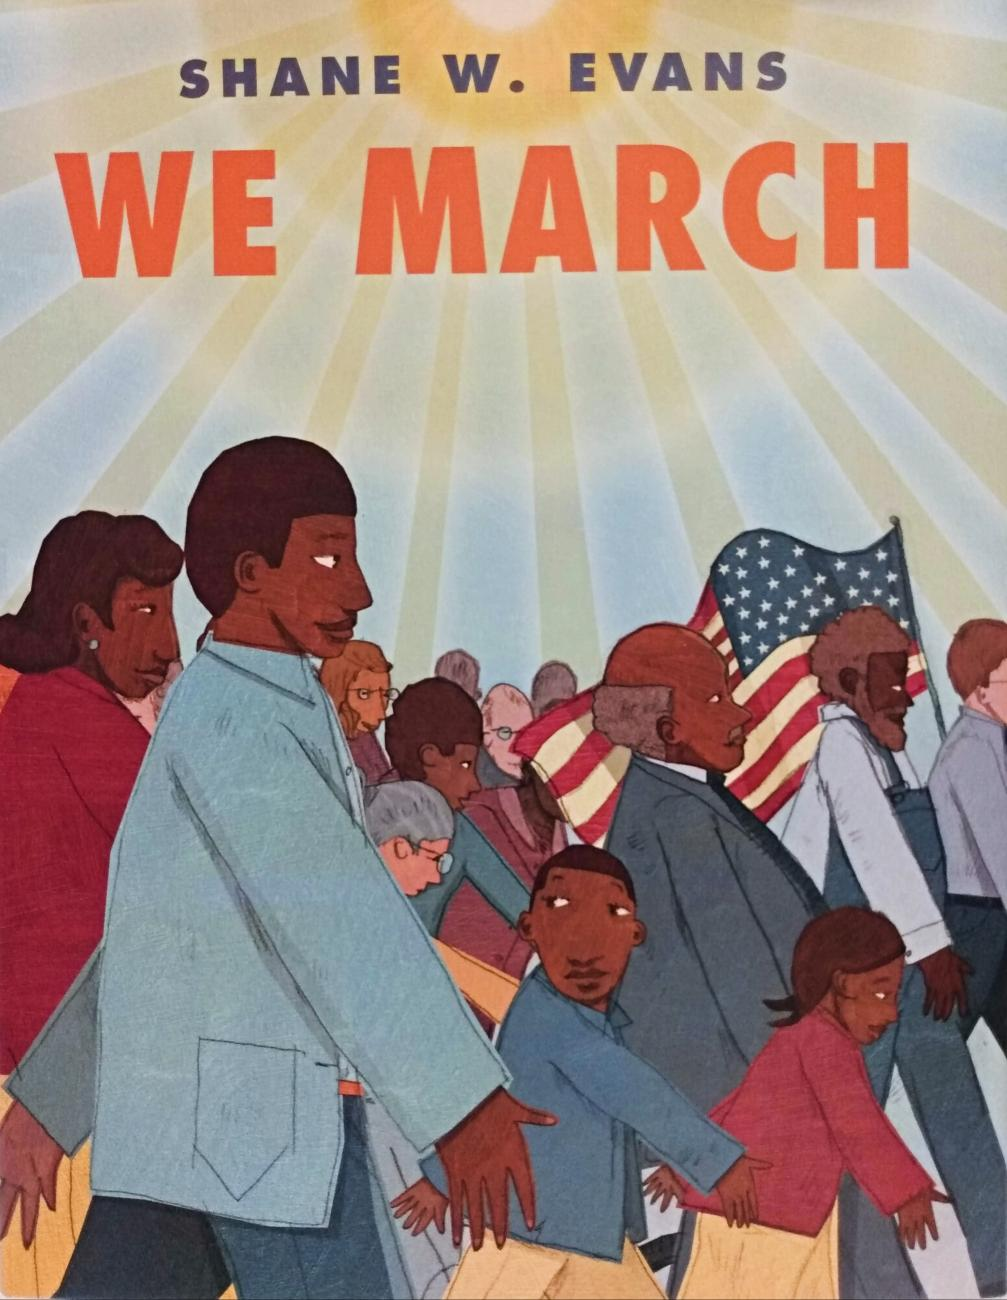 Cover image of the book We March